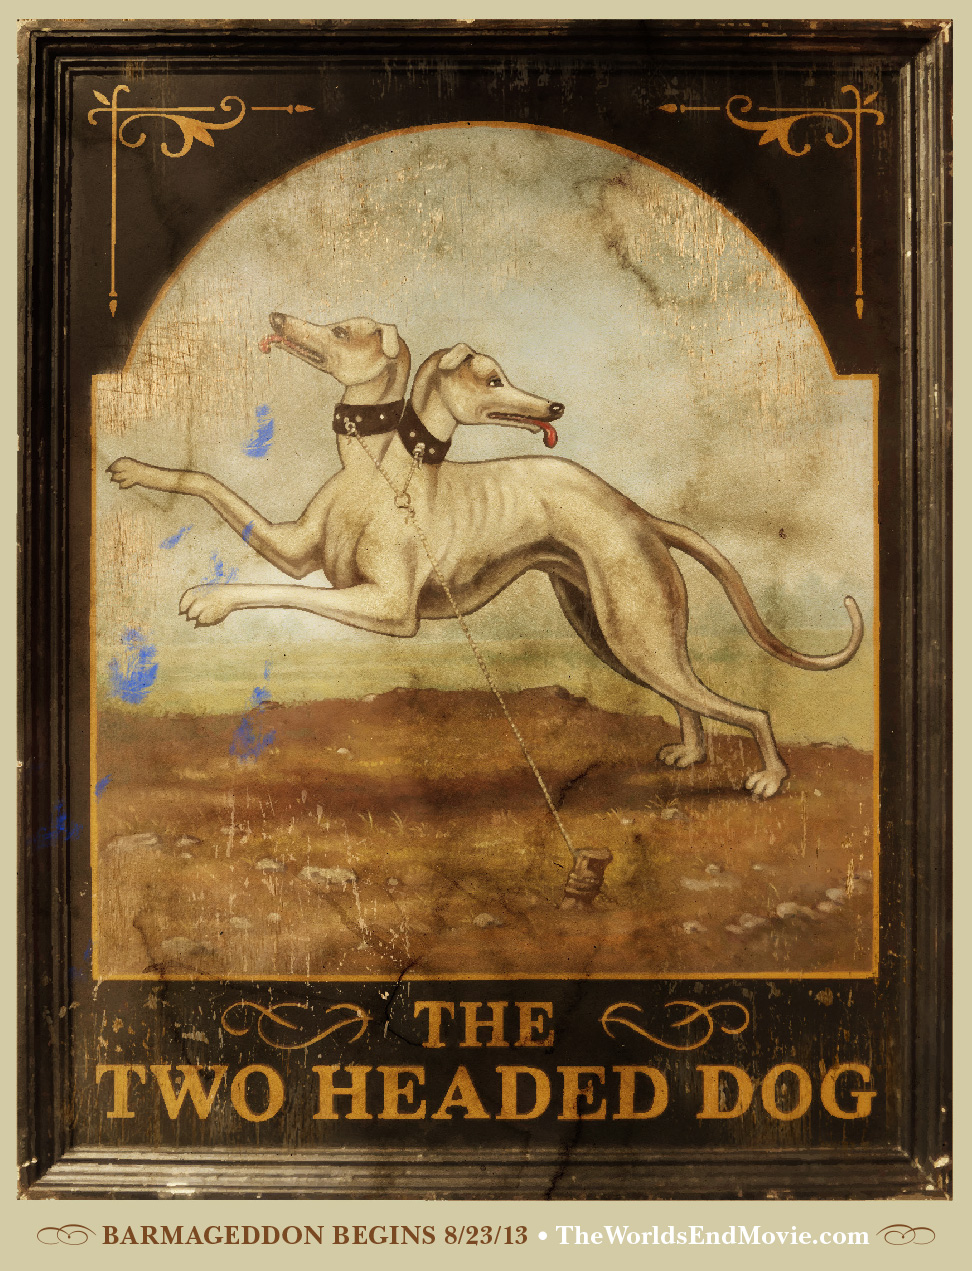 The Two Headed Dog